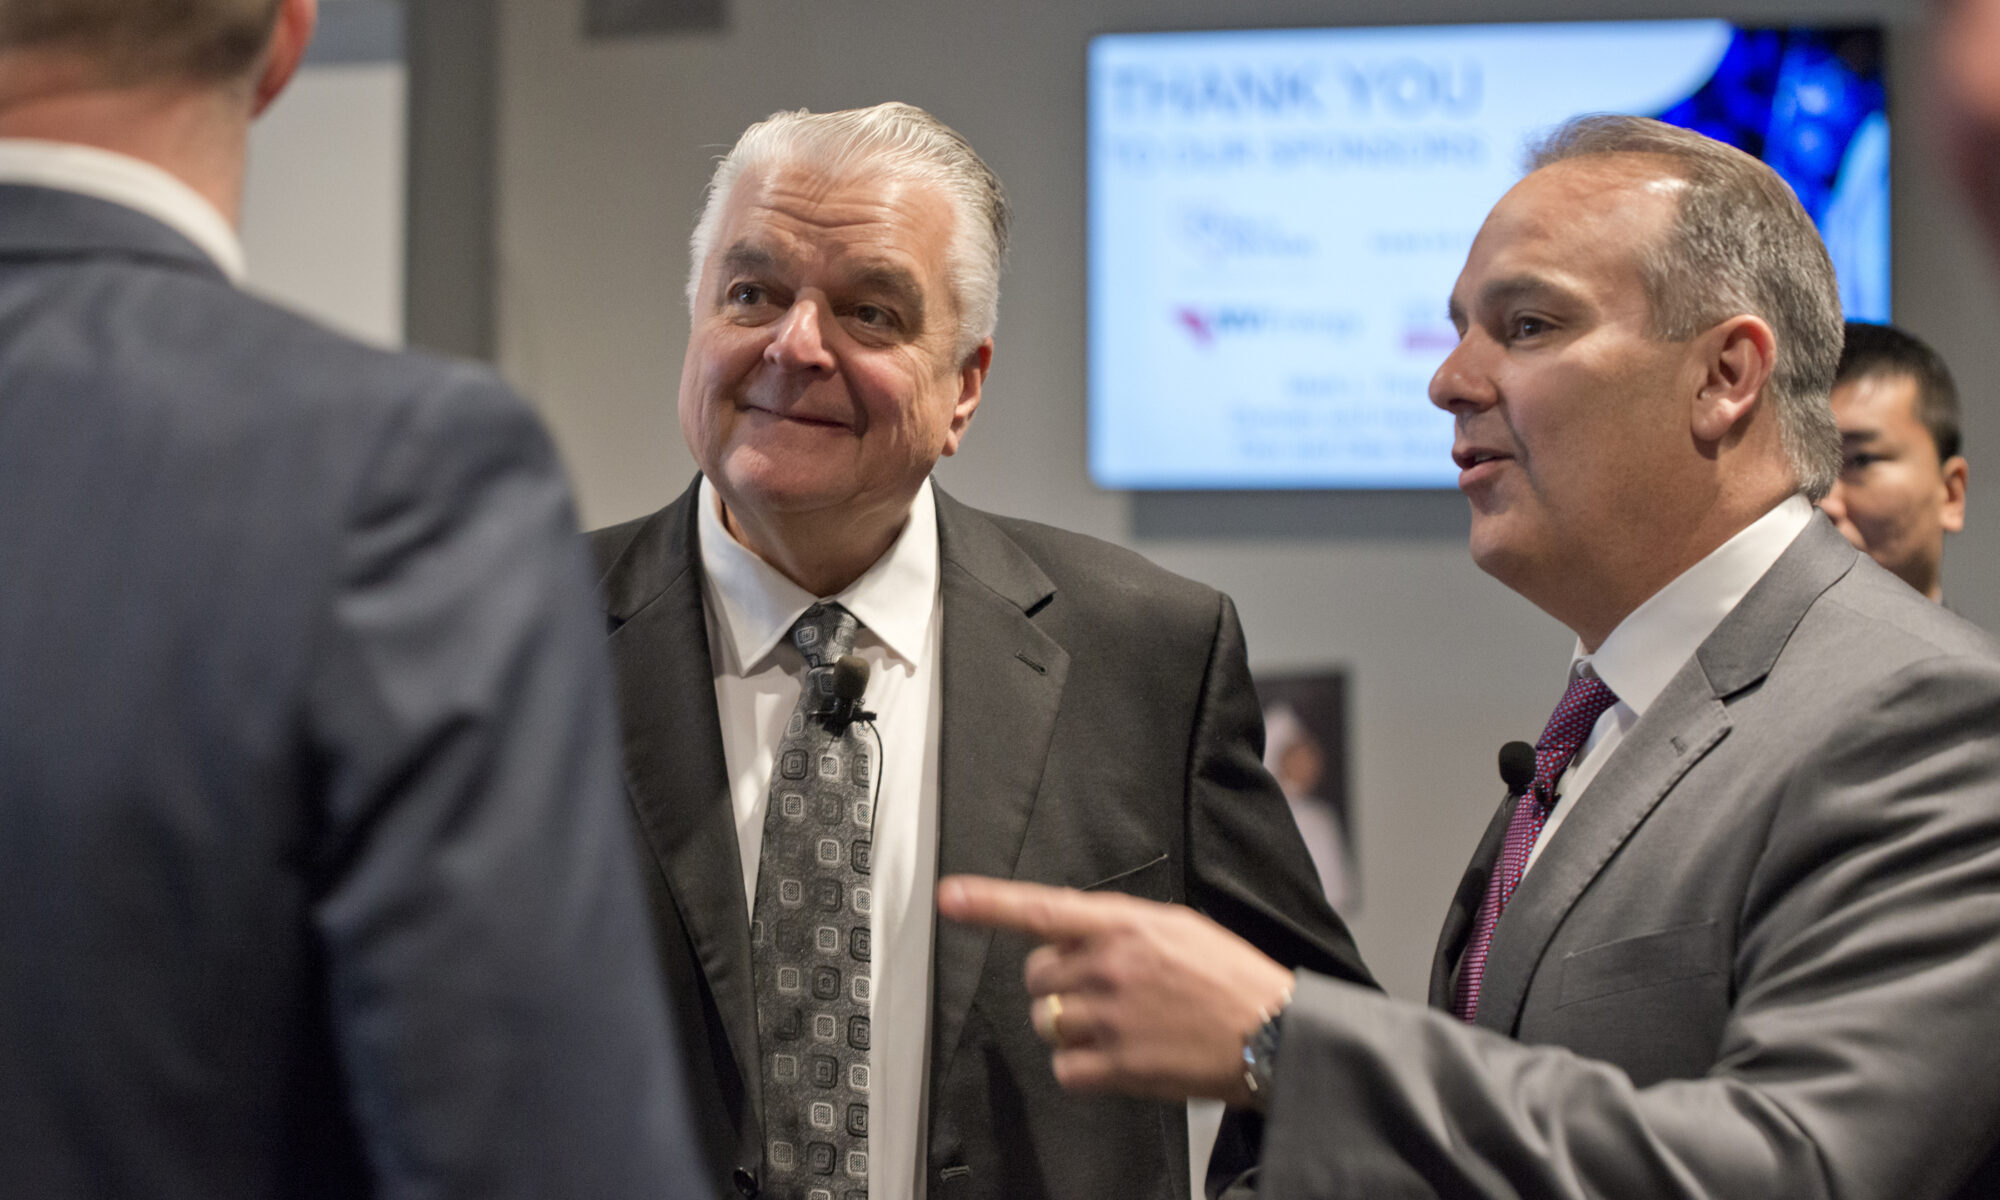 Nevada Governor Steve Sisolak and Clark County Superintendent Jesus Jara speaking with unseen person